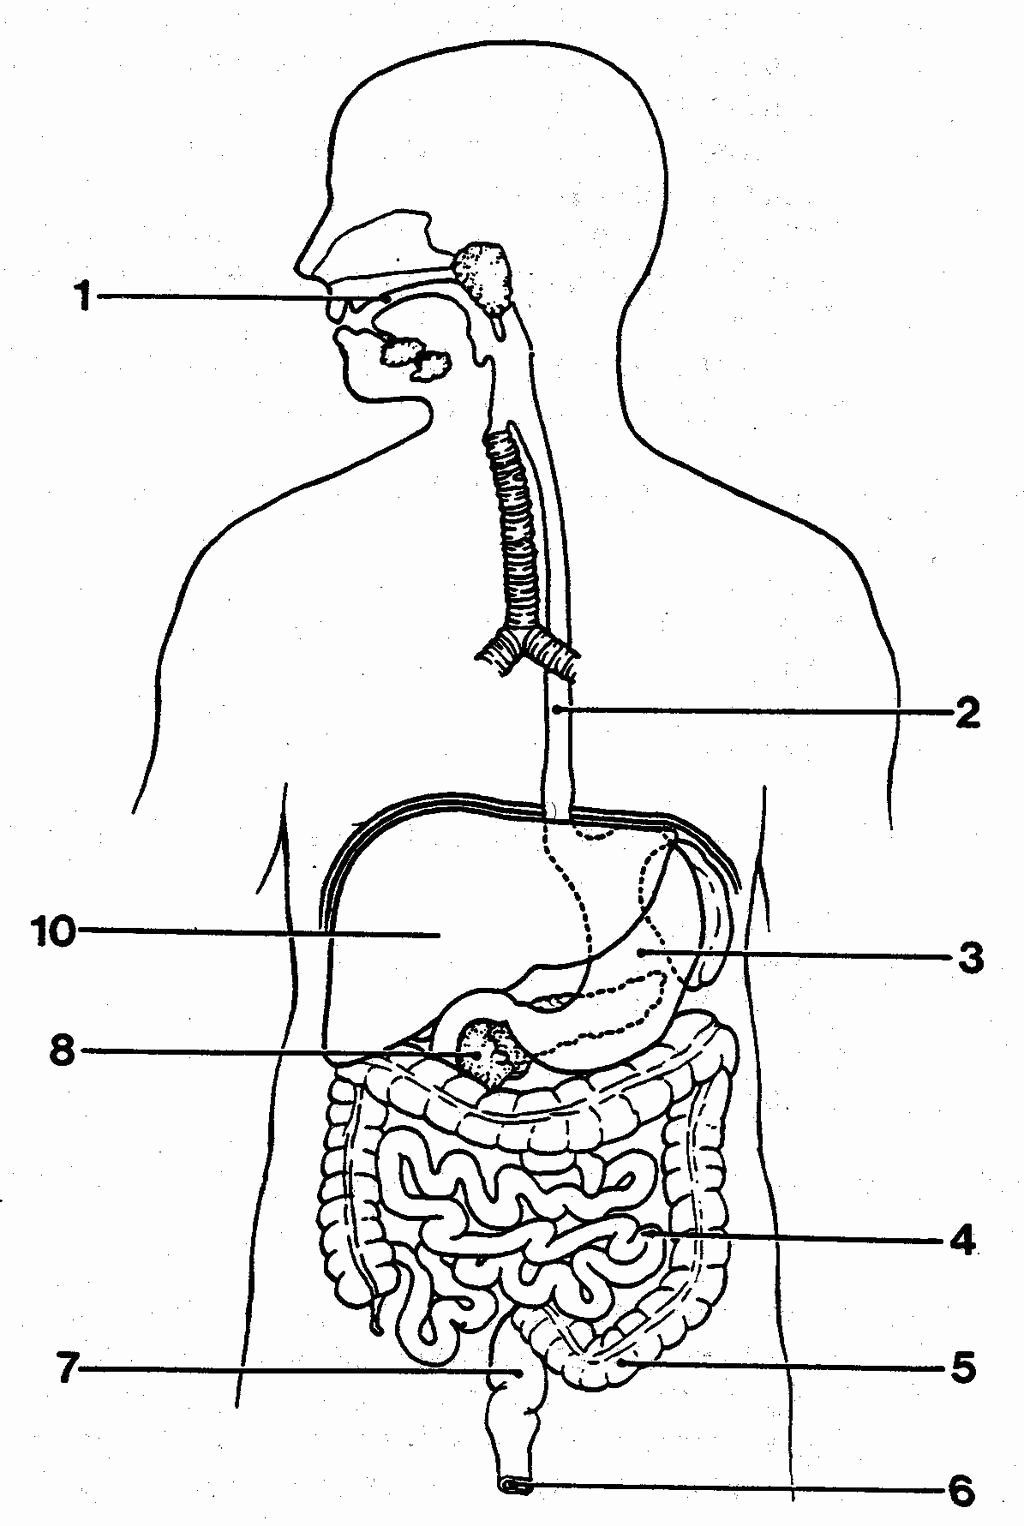 28 Digestive System Coloring Page in 2020 | Biologie